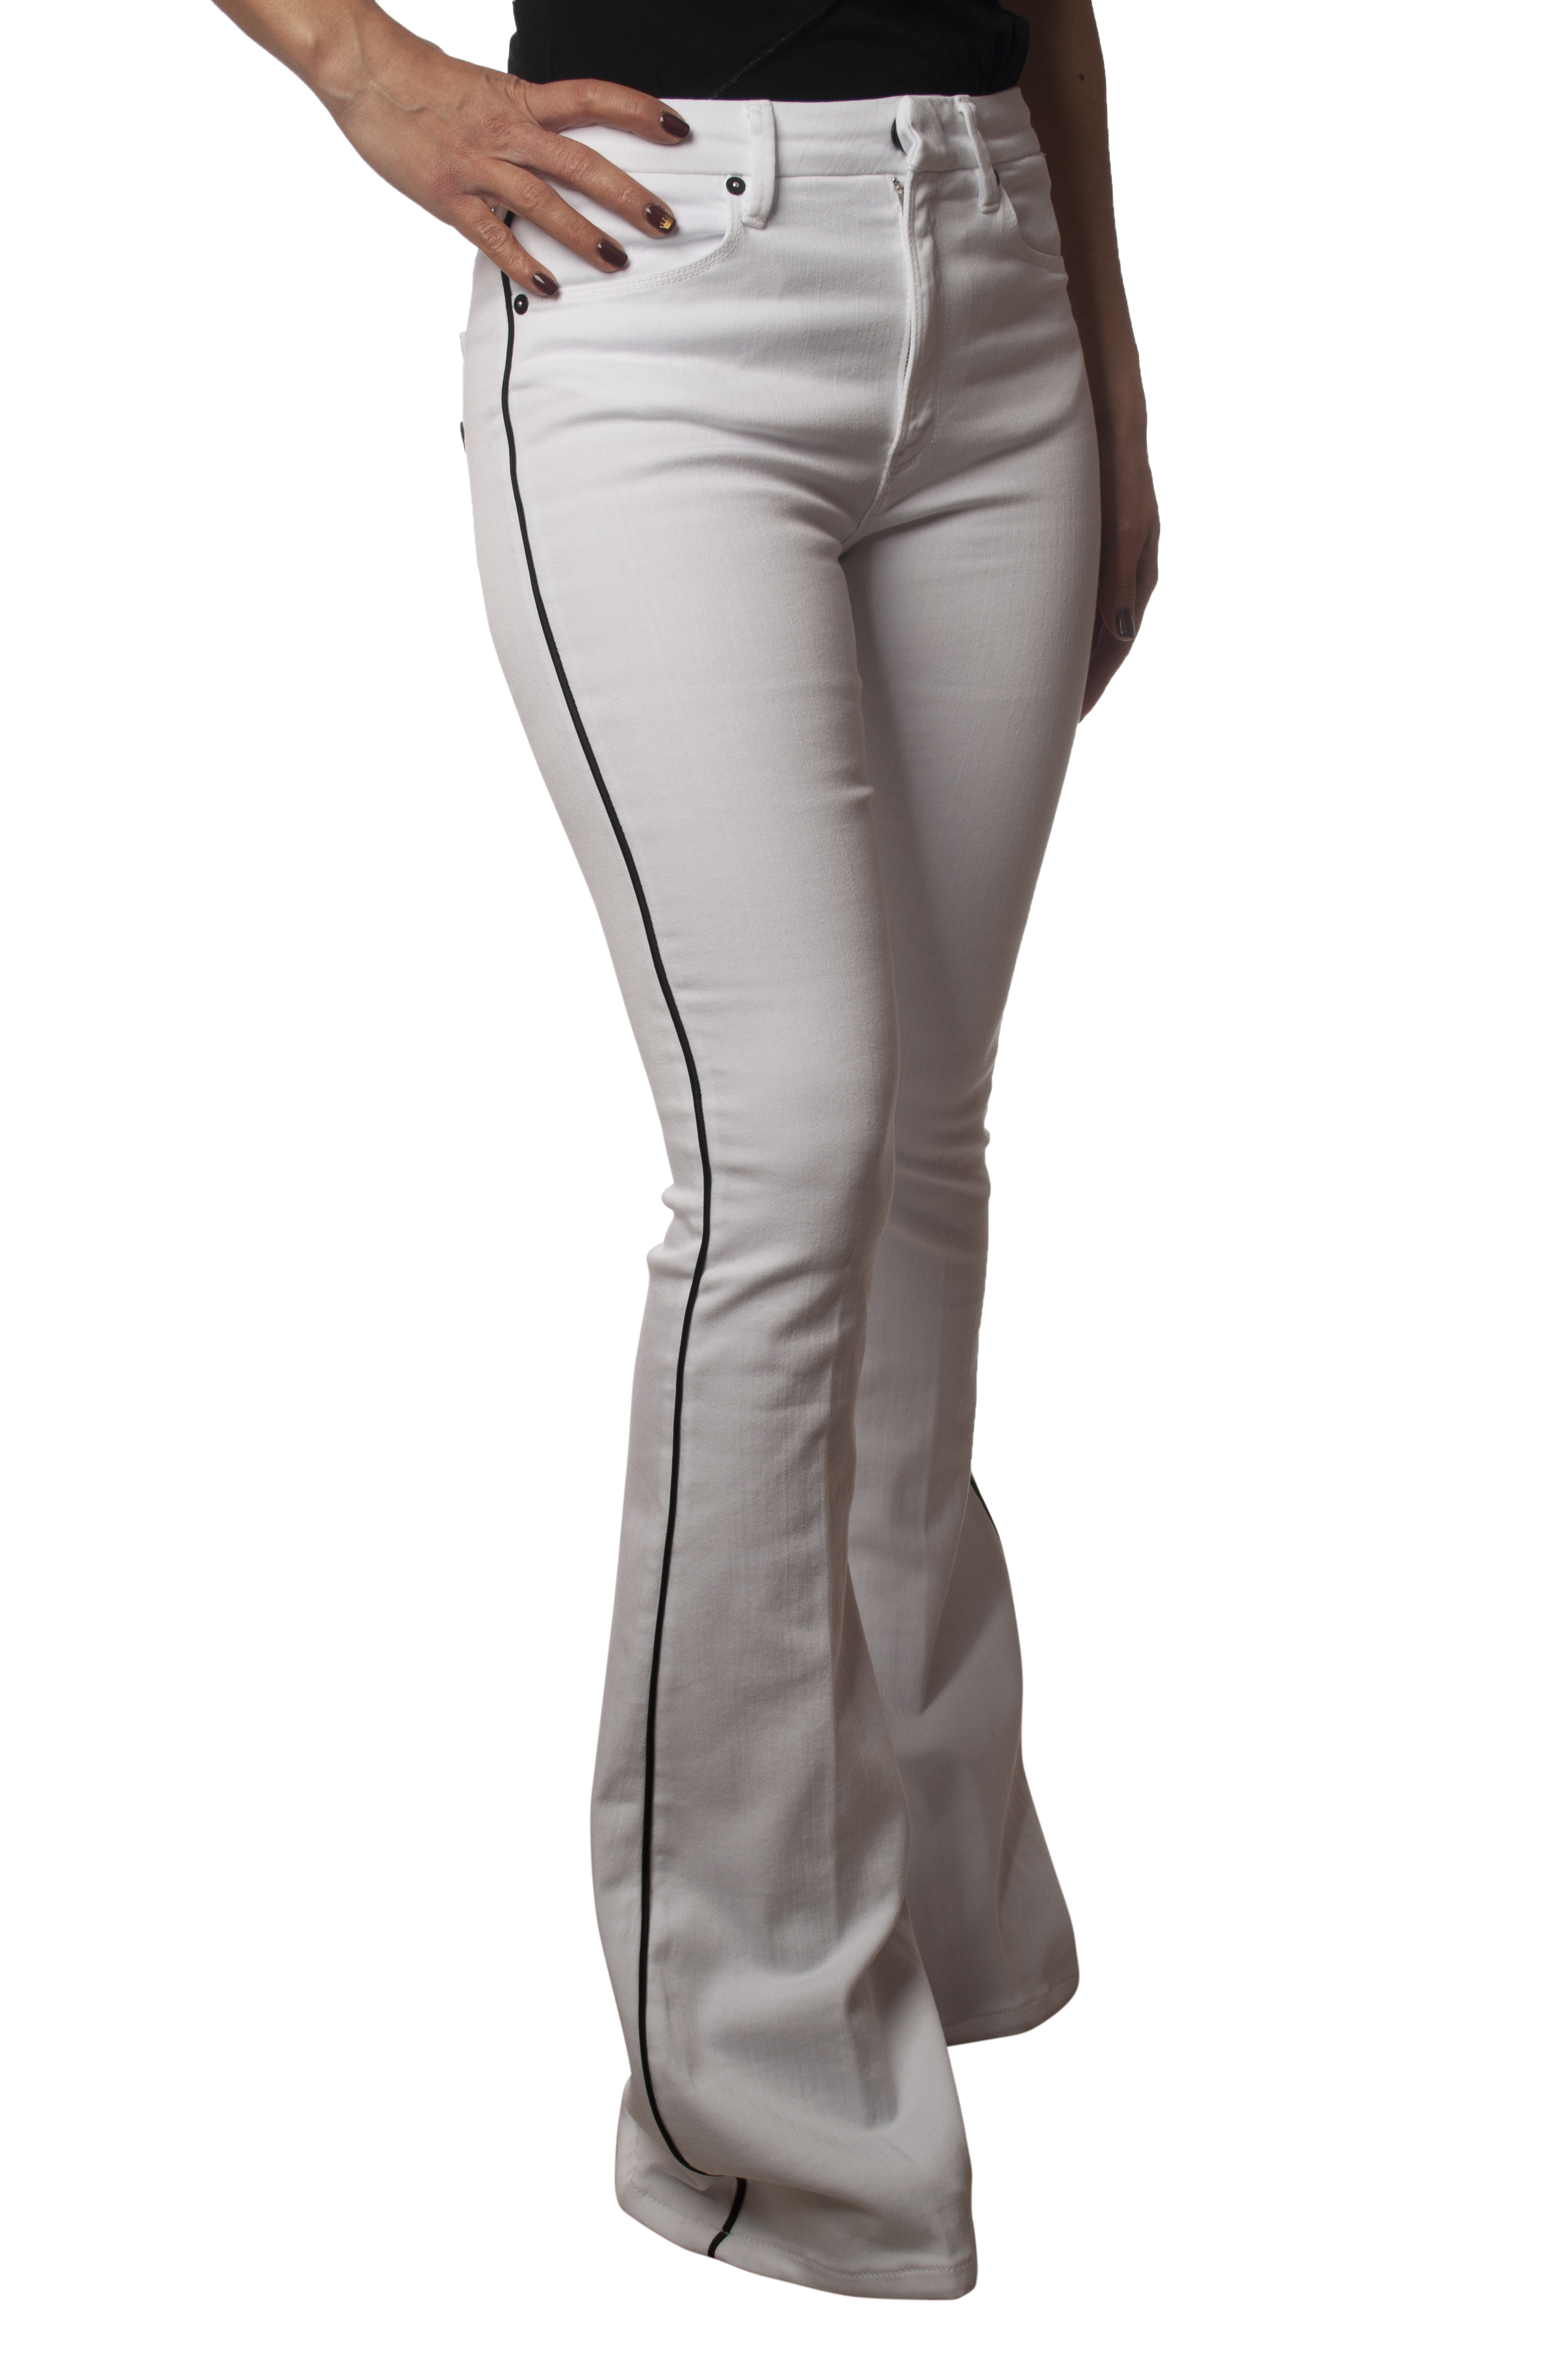 Dondup - Jeans, Trousers, leg - Woman - White - 5940609C190847